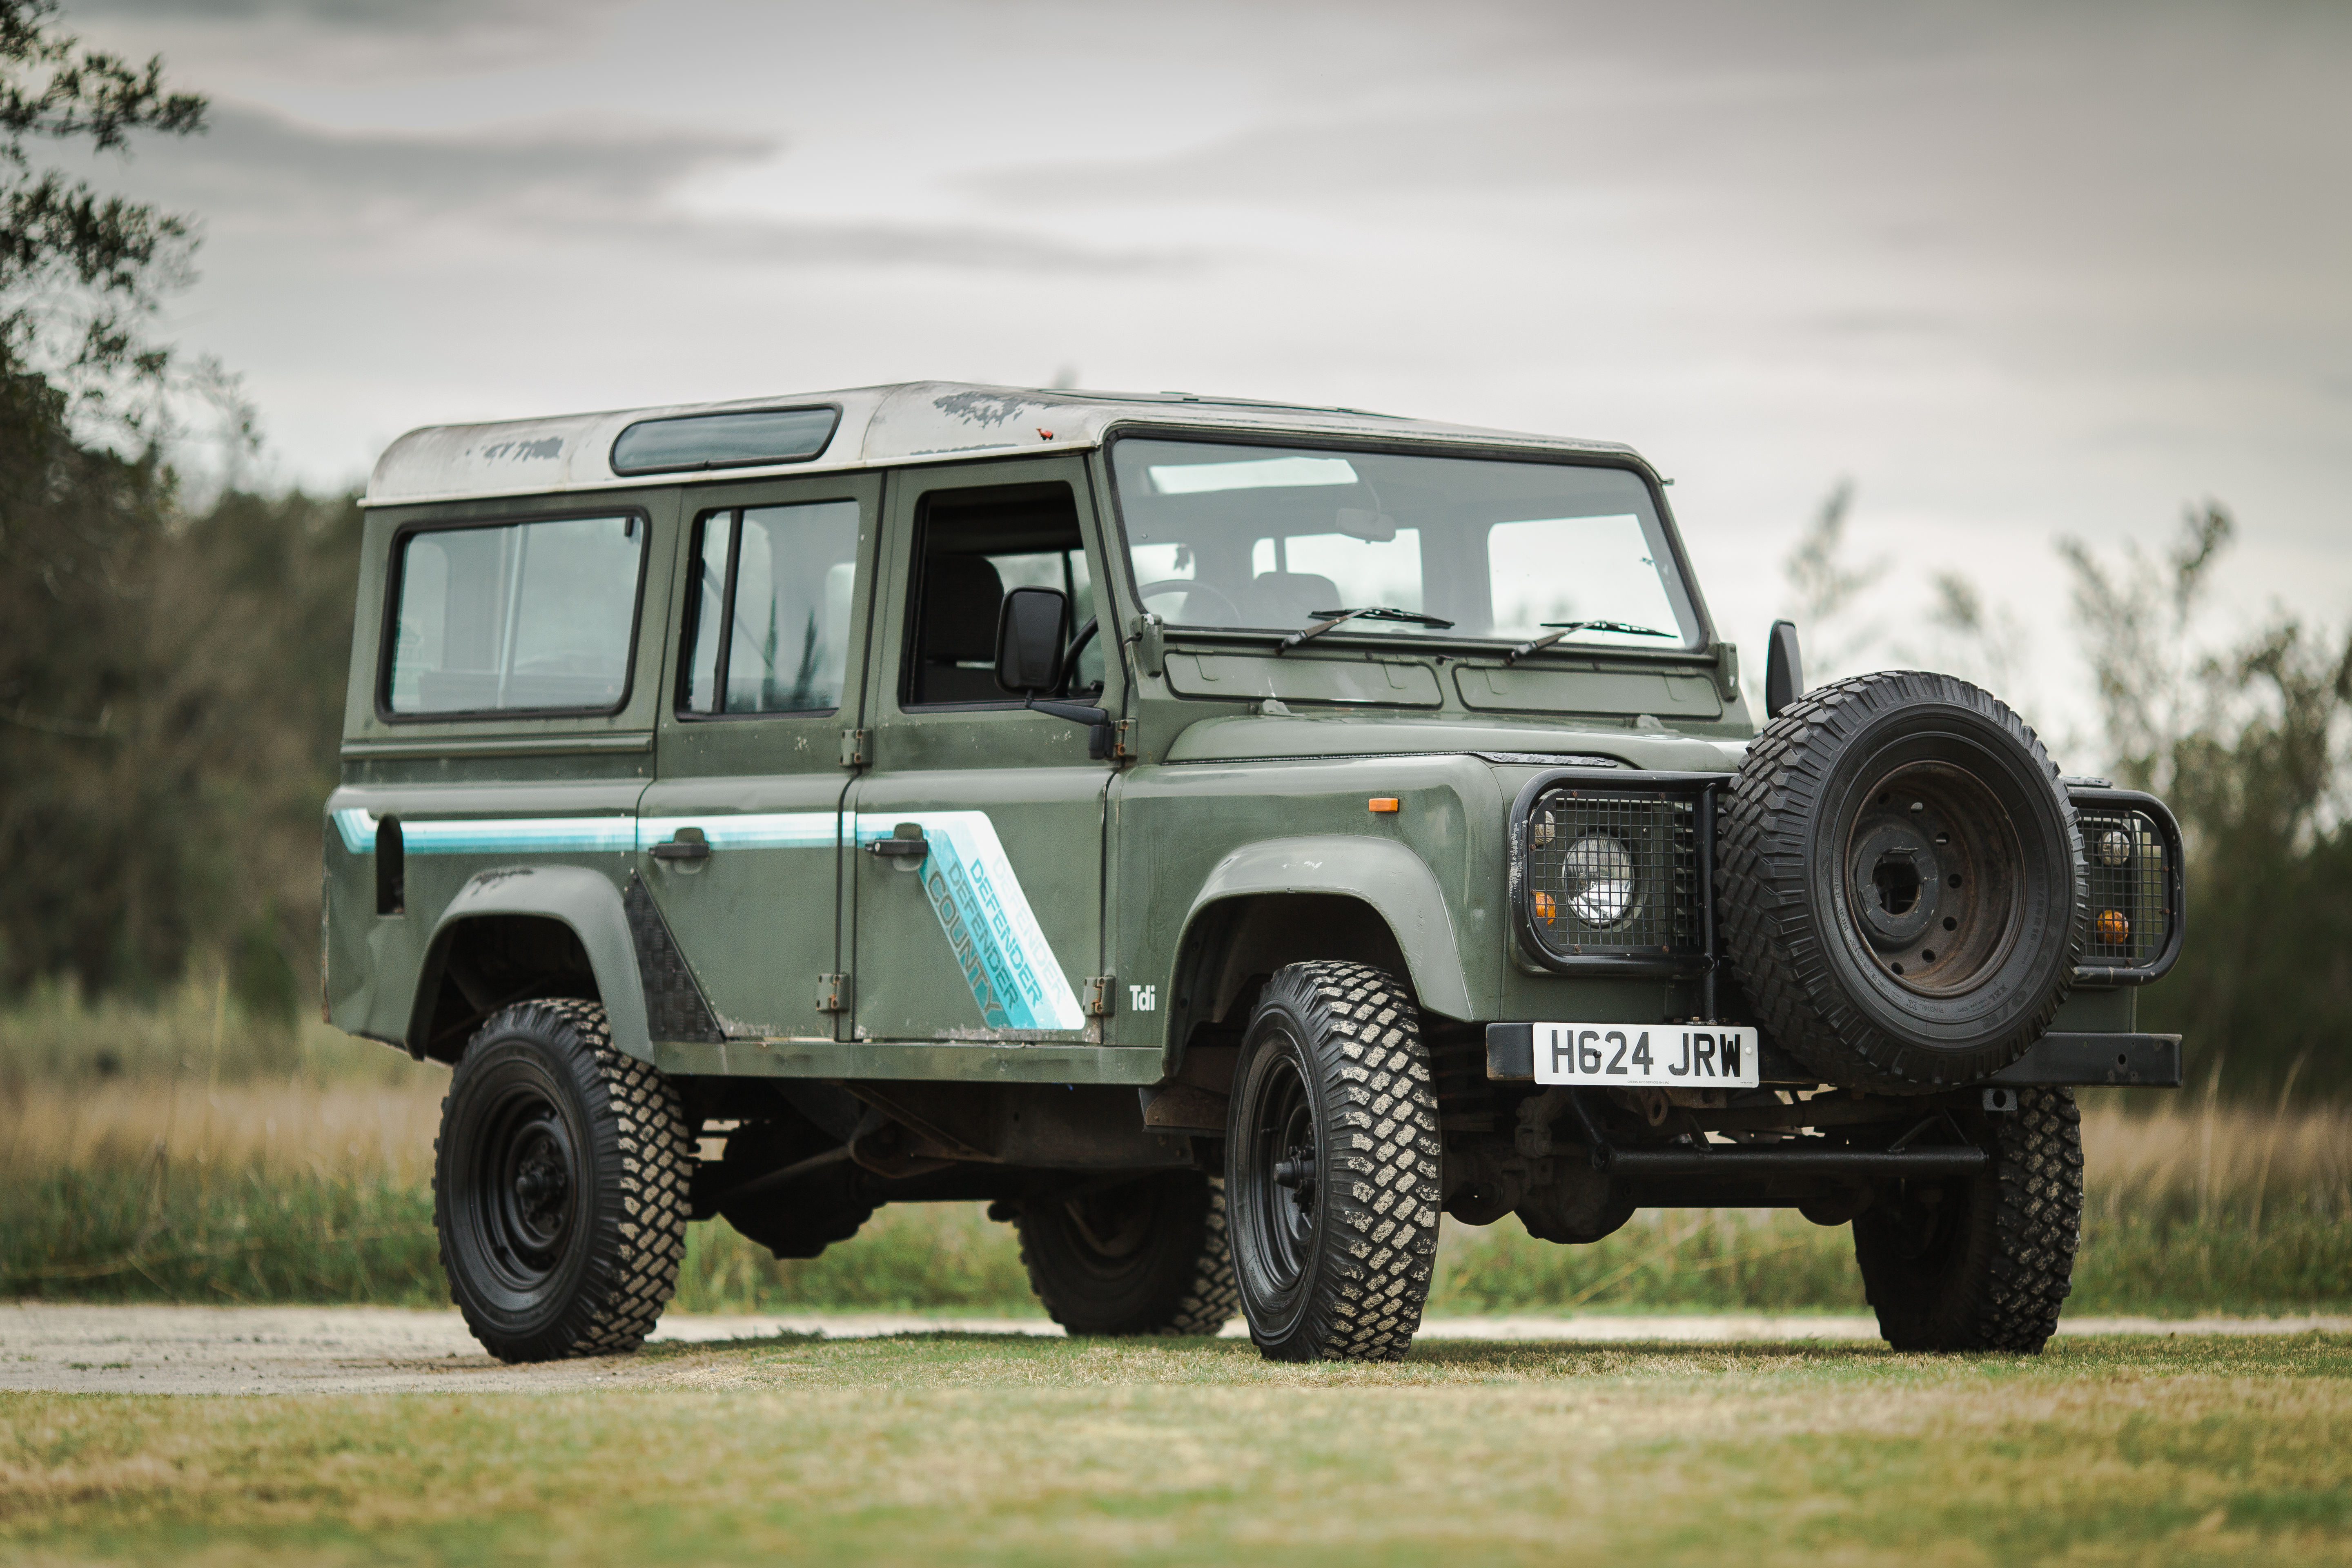 One Owner Land Rover Defender 110 TDI – Relic Imports | Land Rover